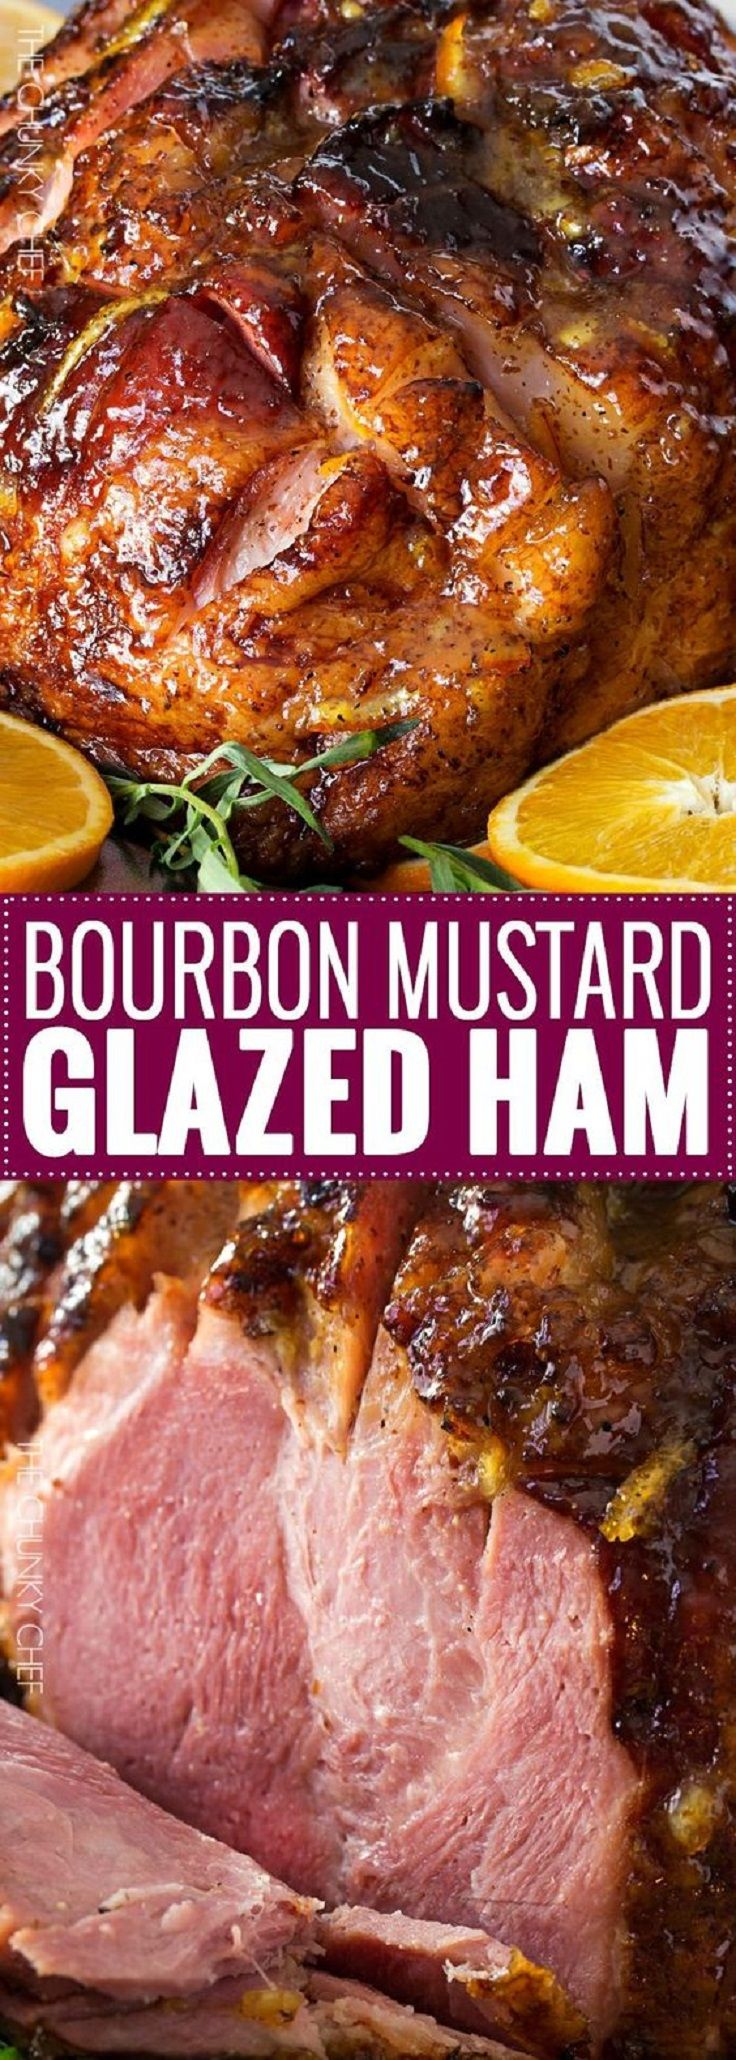 Bourbon Orange Glazed Ham - 17 Easter Dinner Ideas for an Everlasting Family Feast